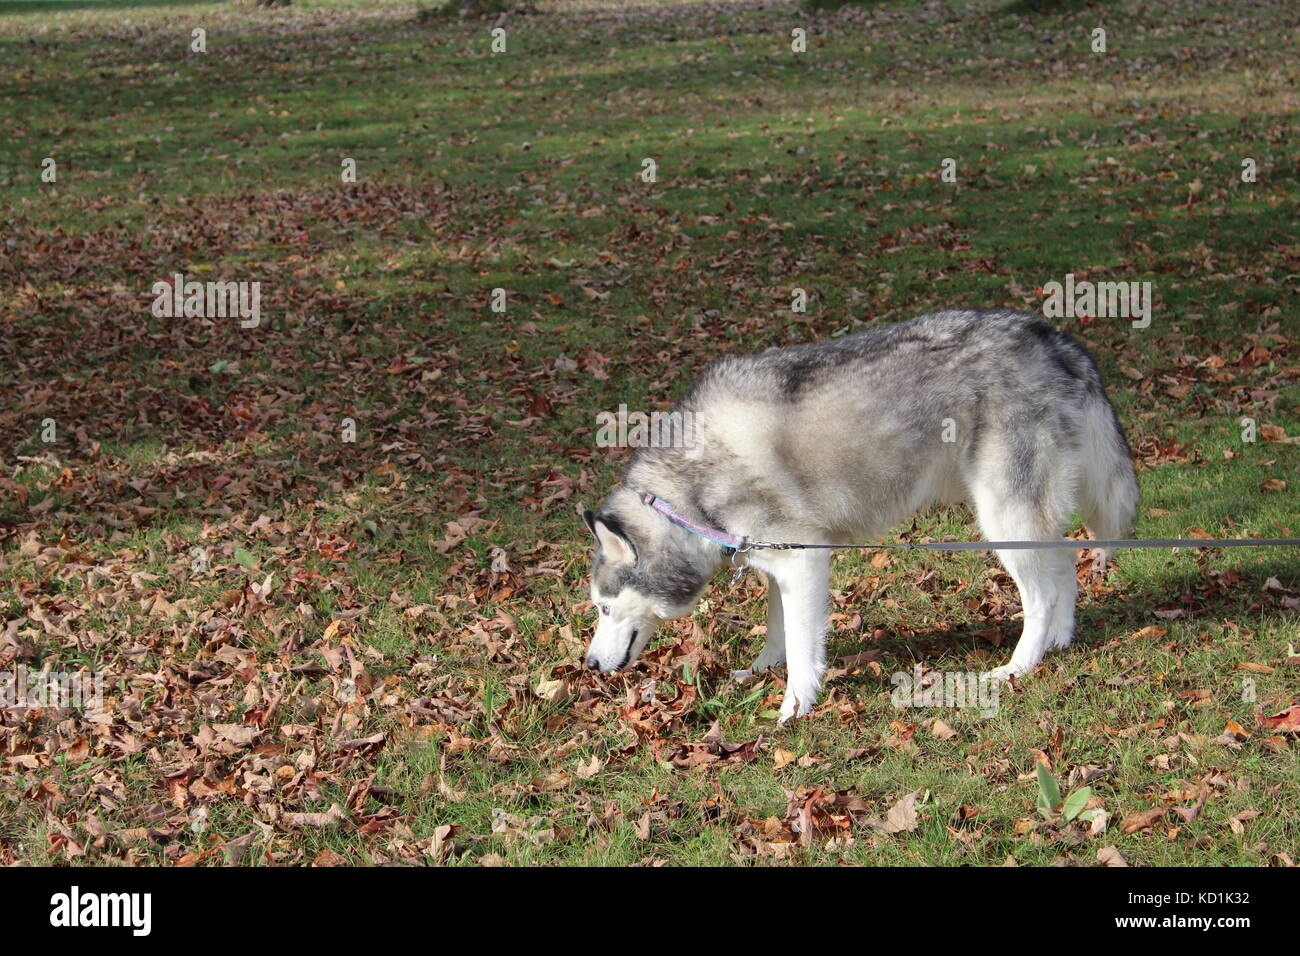 A Siberian Husky Wolf Dog Malamute Sled Dog in the country outside on a nice Autumn fall day - Stock Image